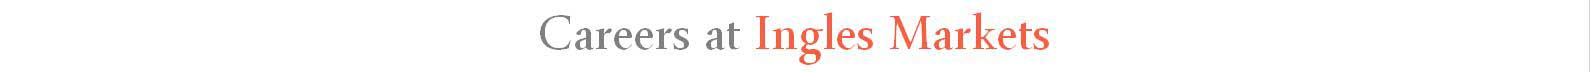 Careers at Ingles Markets